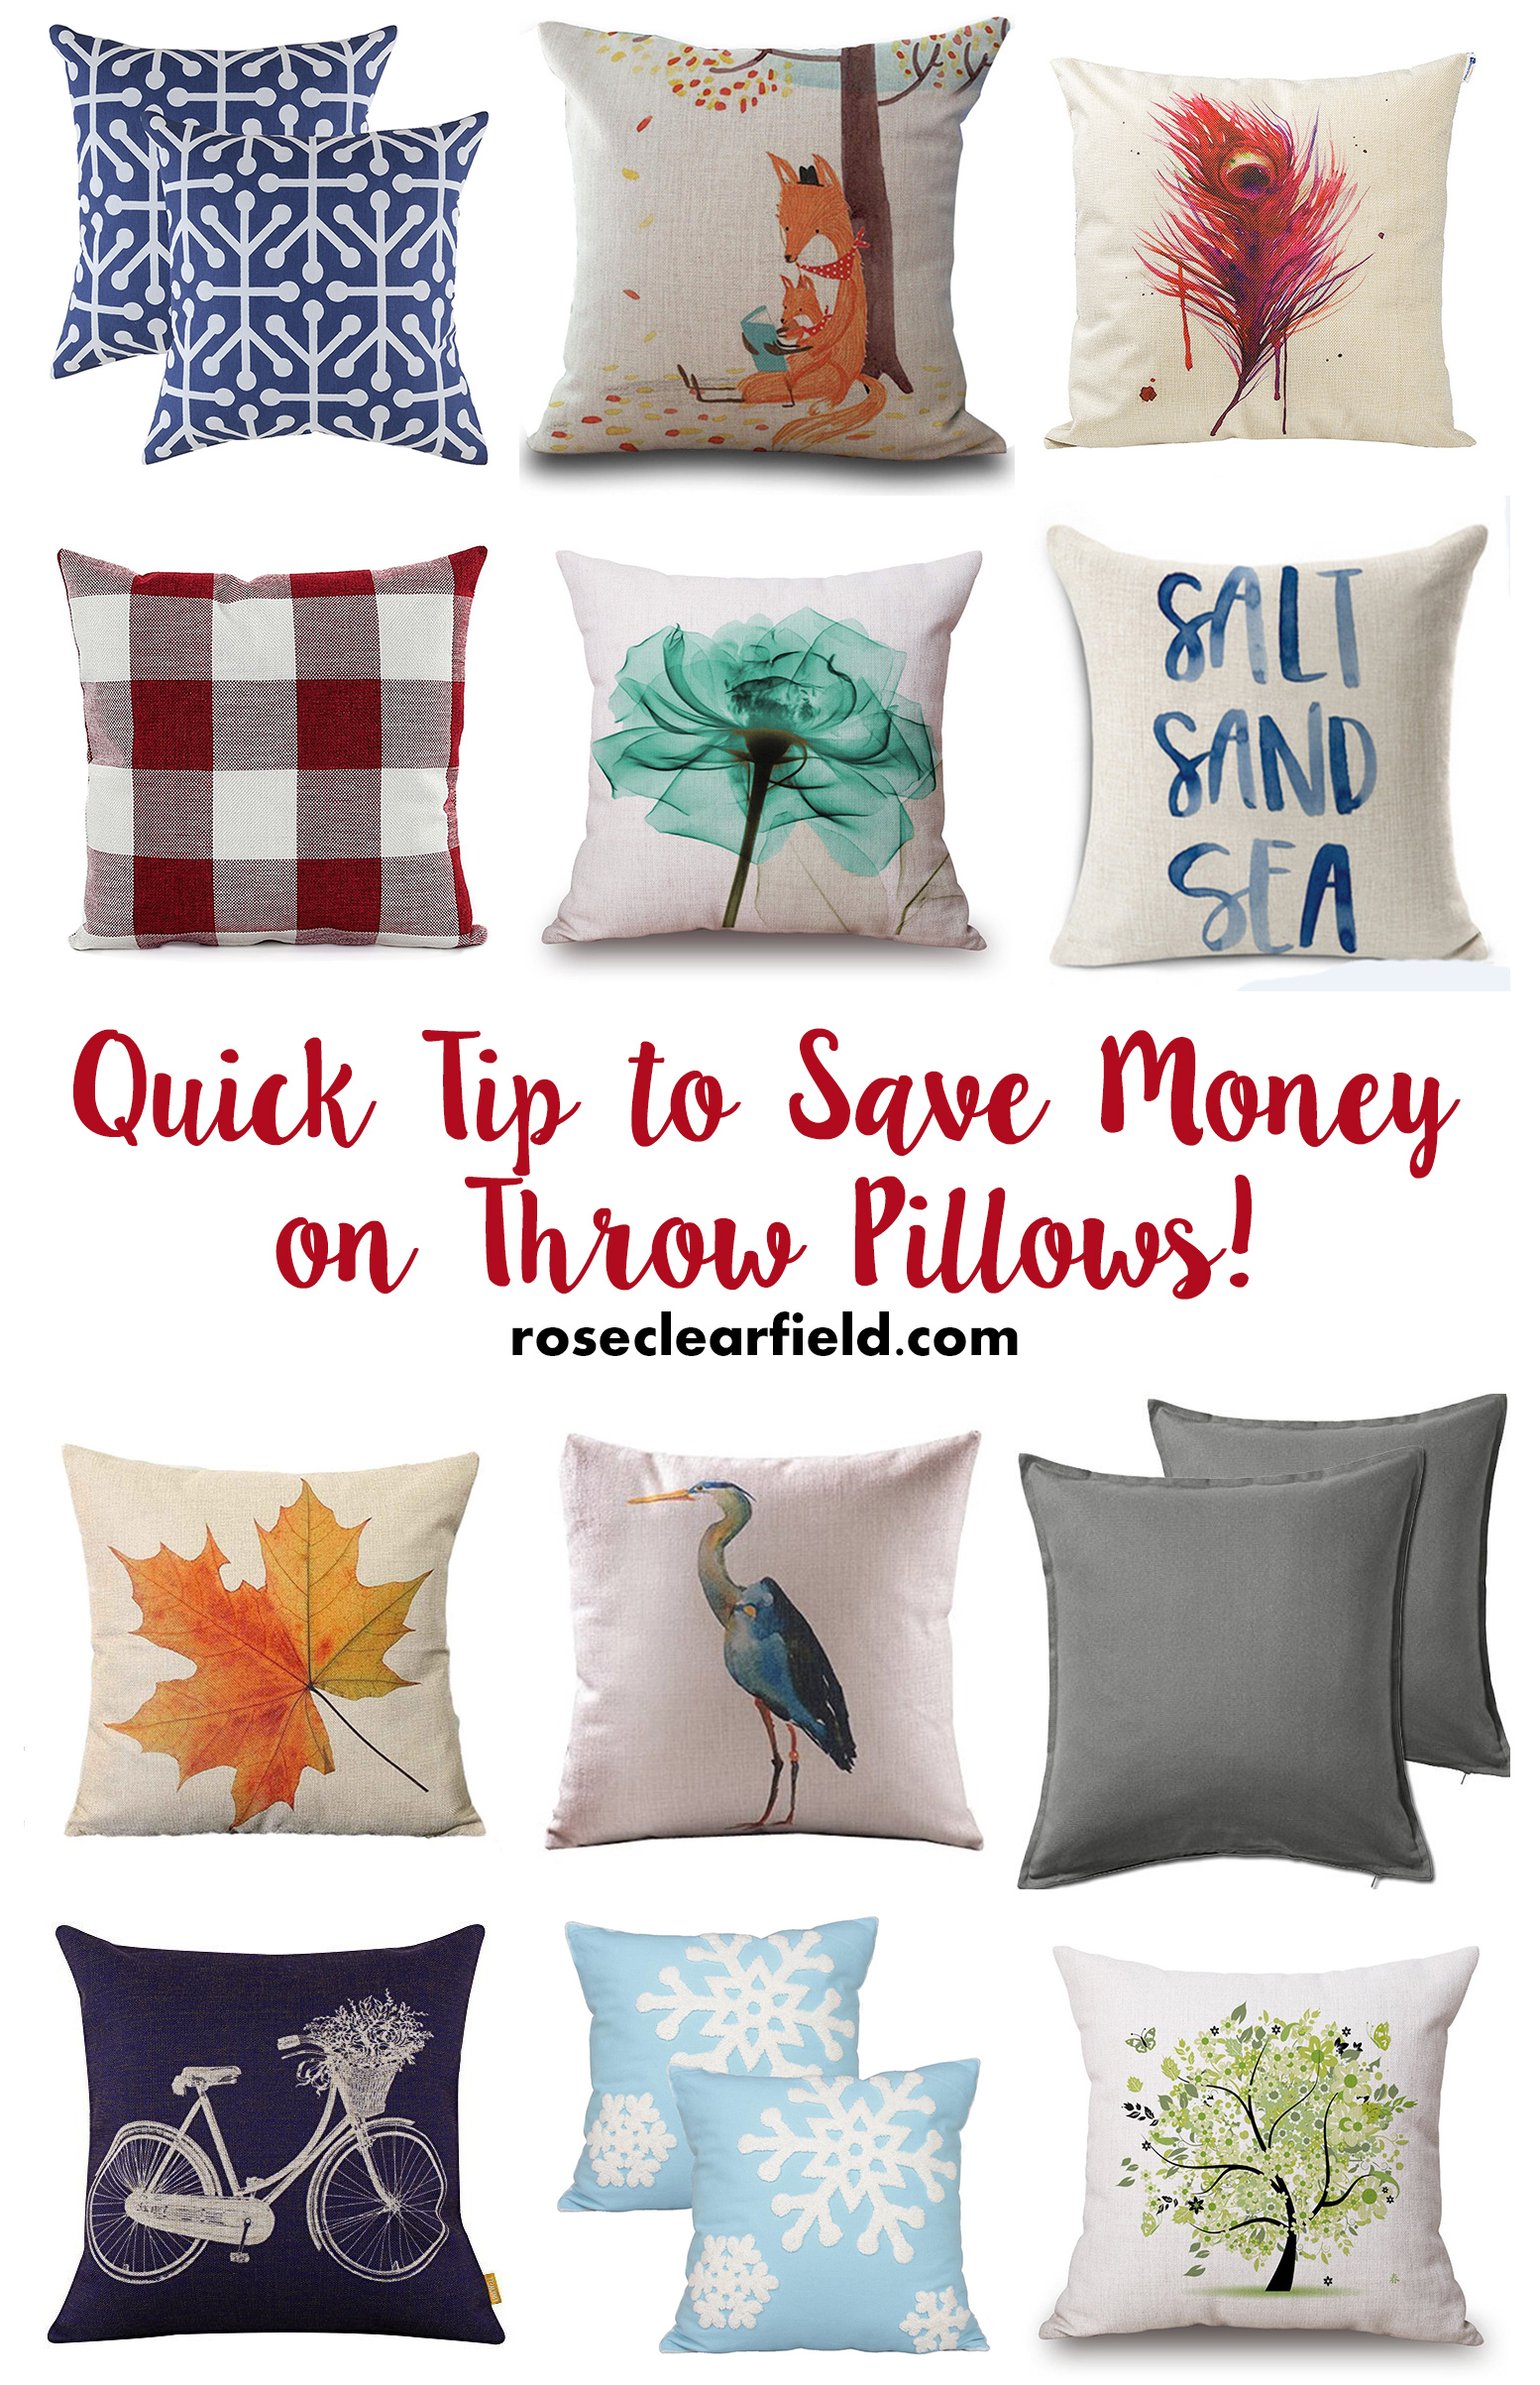 Quick Tip to Save Money on Throw Pillows! | http://www.roseclearfield.com